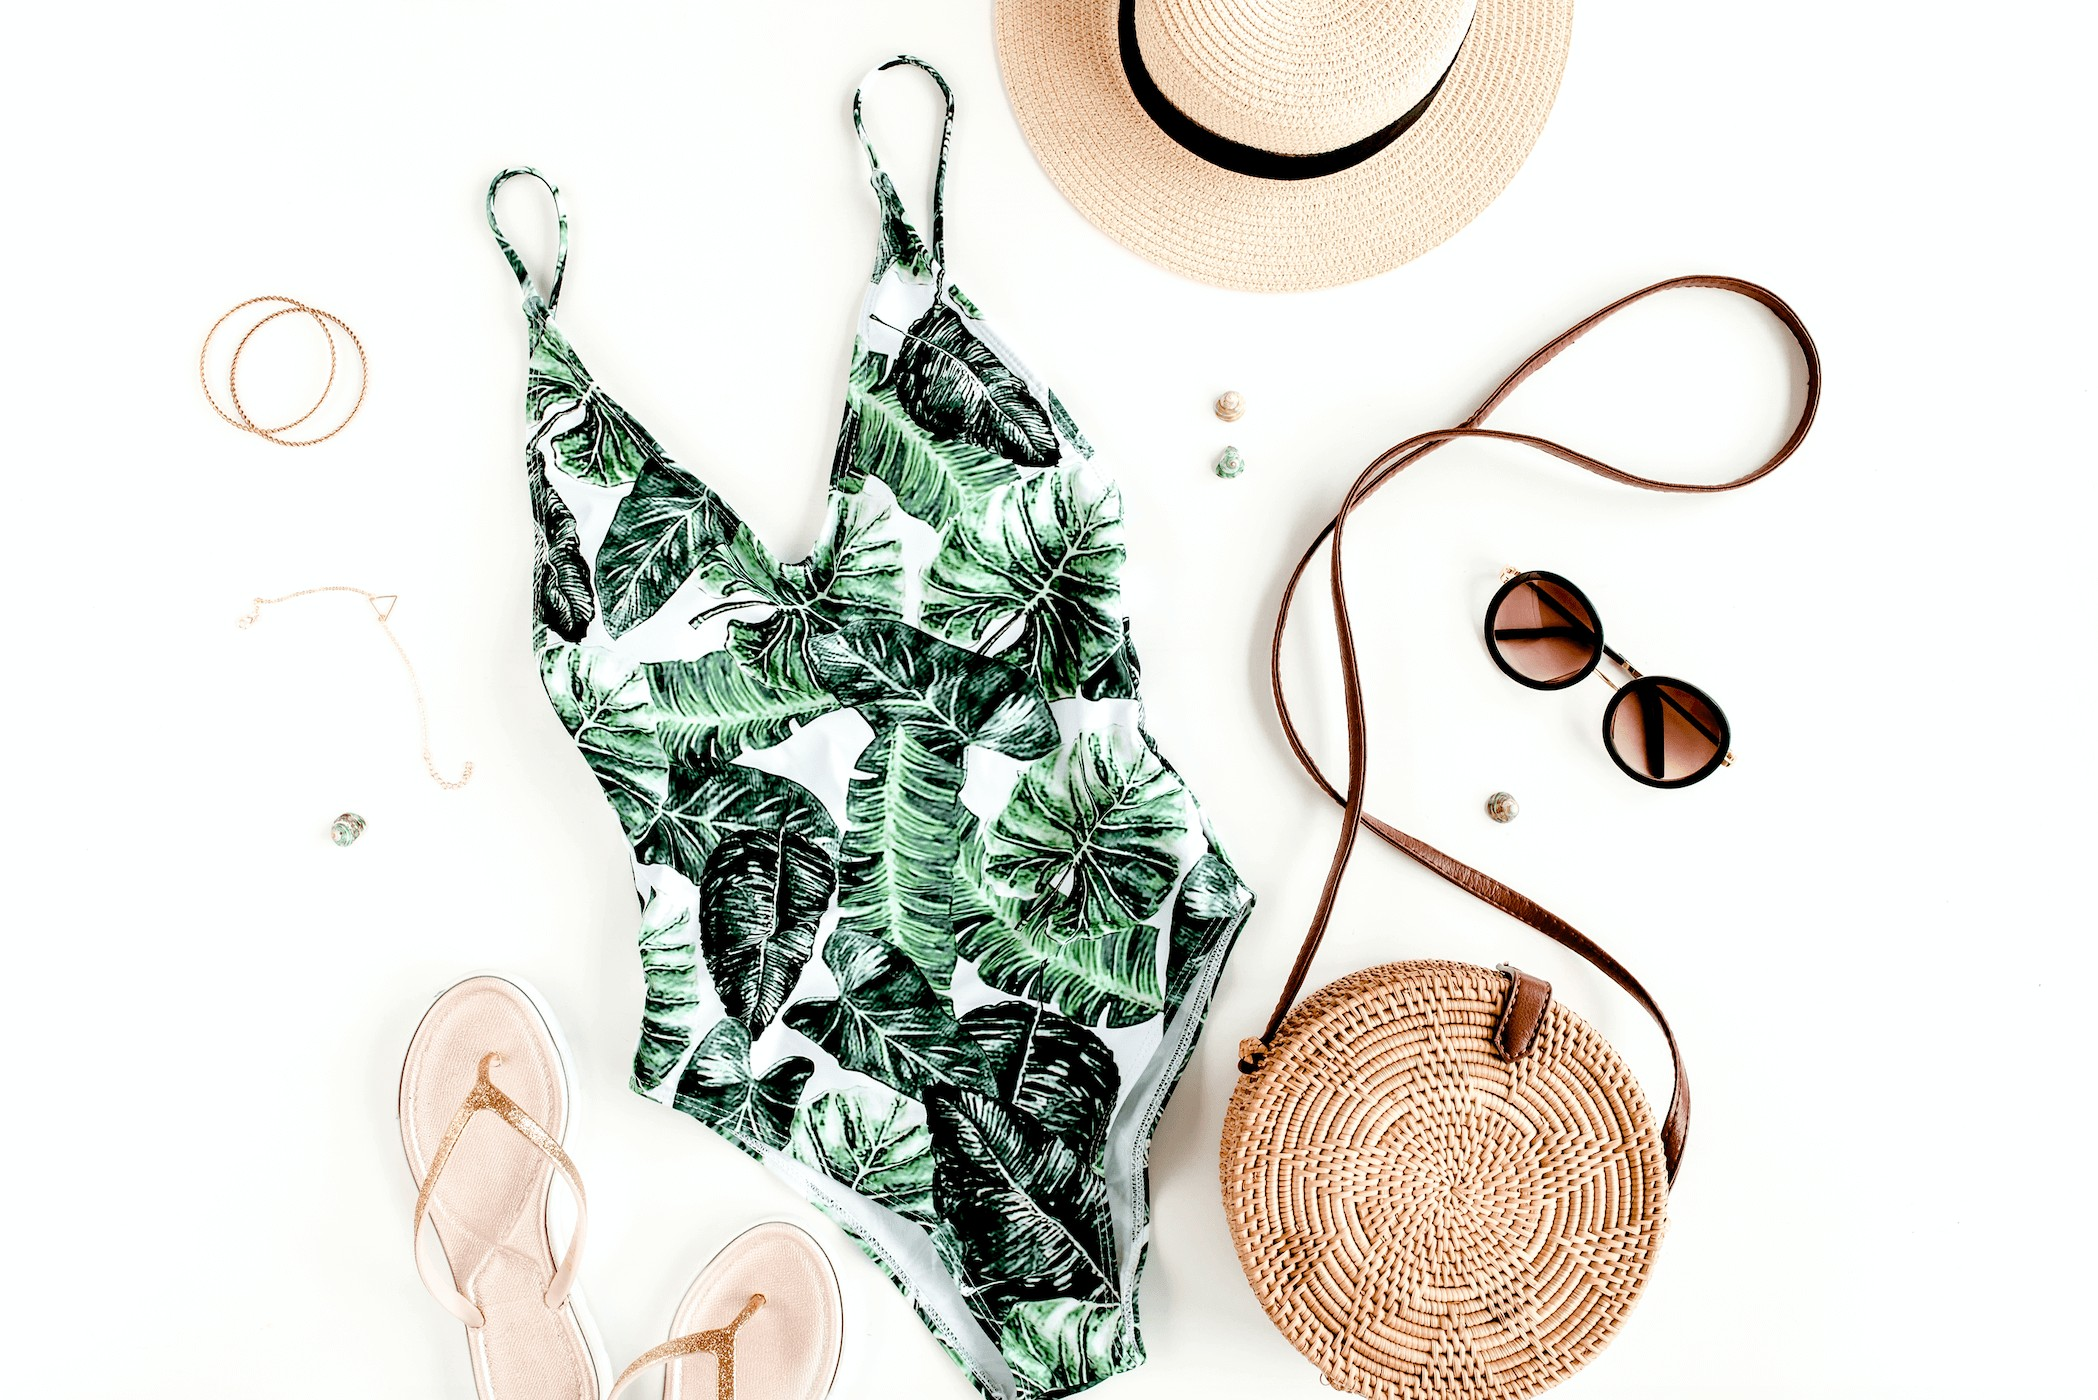 20 Best Sustainable Swimwear Brands for an Eco-Friendly Summer